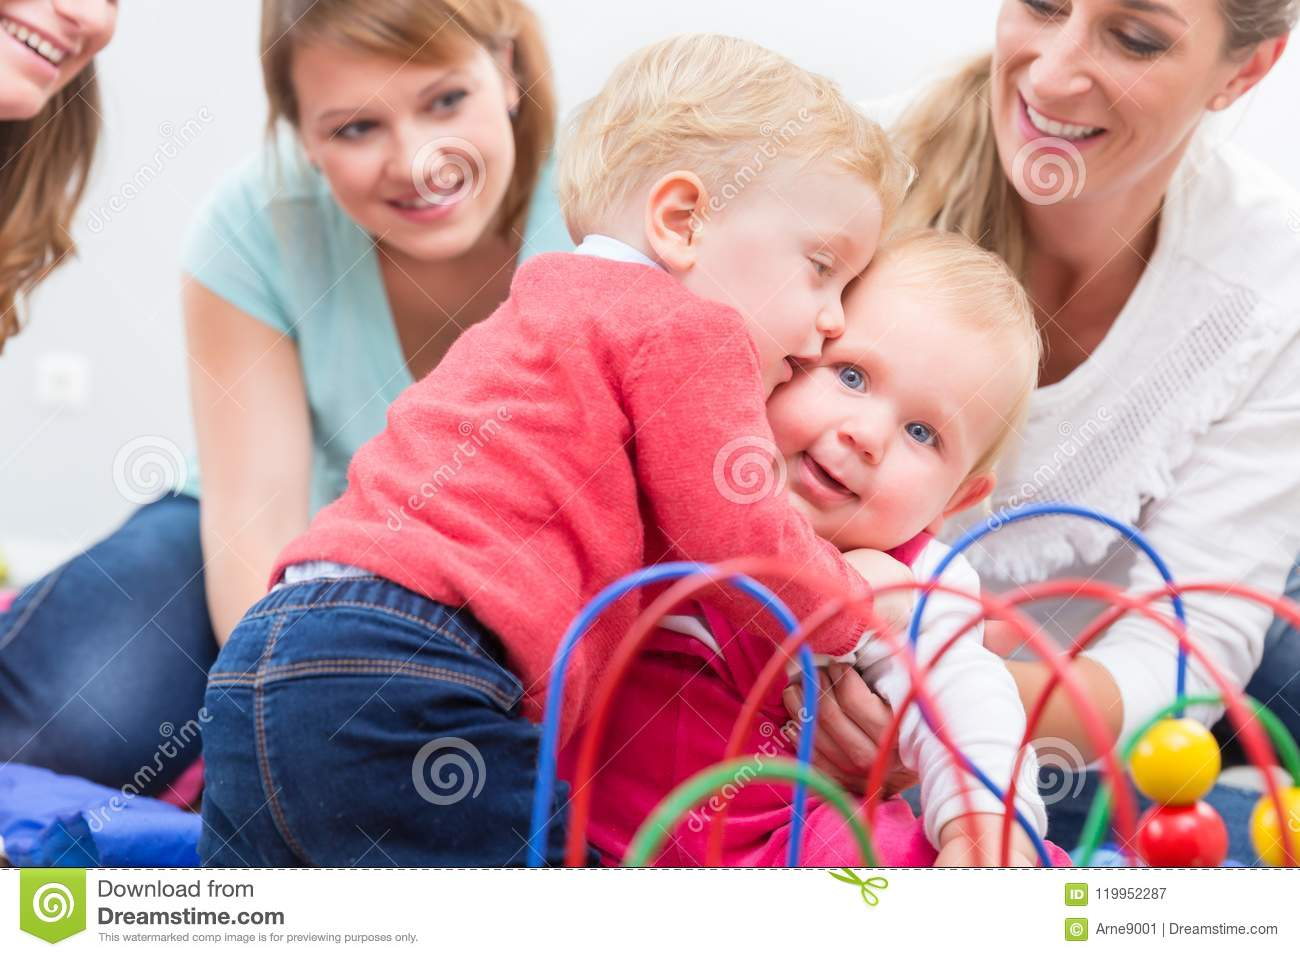 Group of happy young mothers watching their cute and healthy babies play